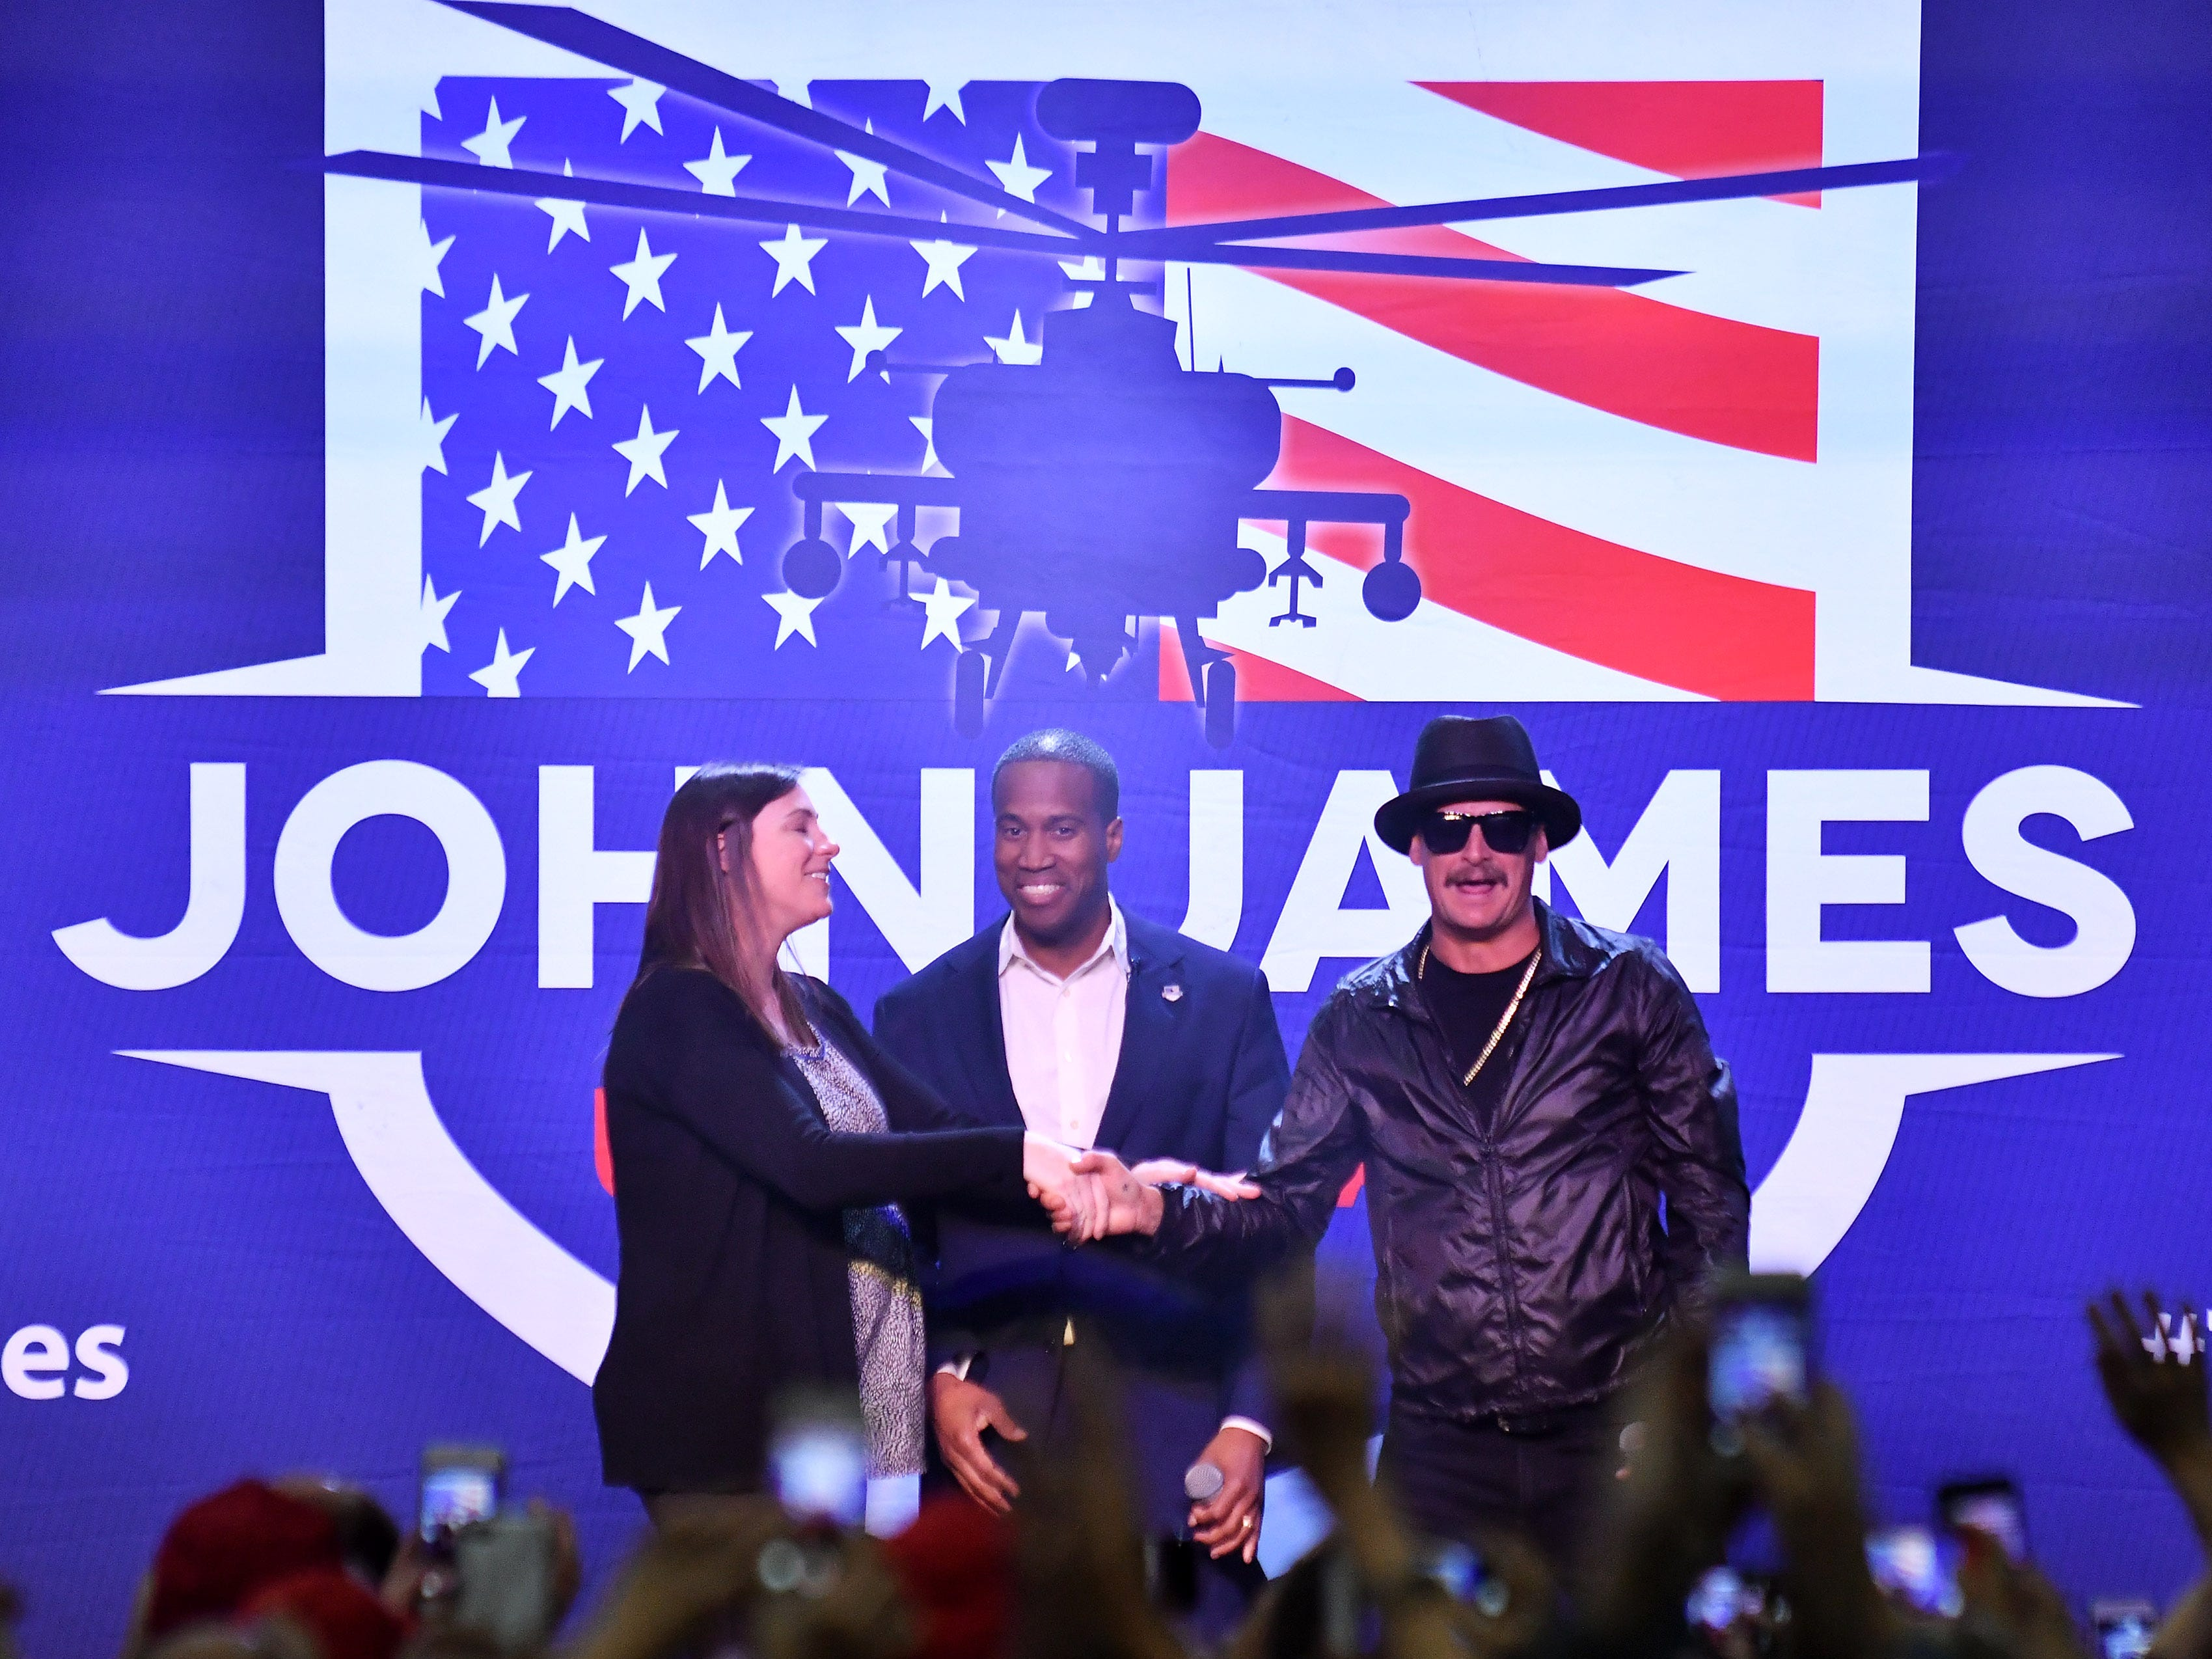 Kid Rock introduces John James and his wife Elizabeth, left, during the rally.